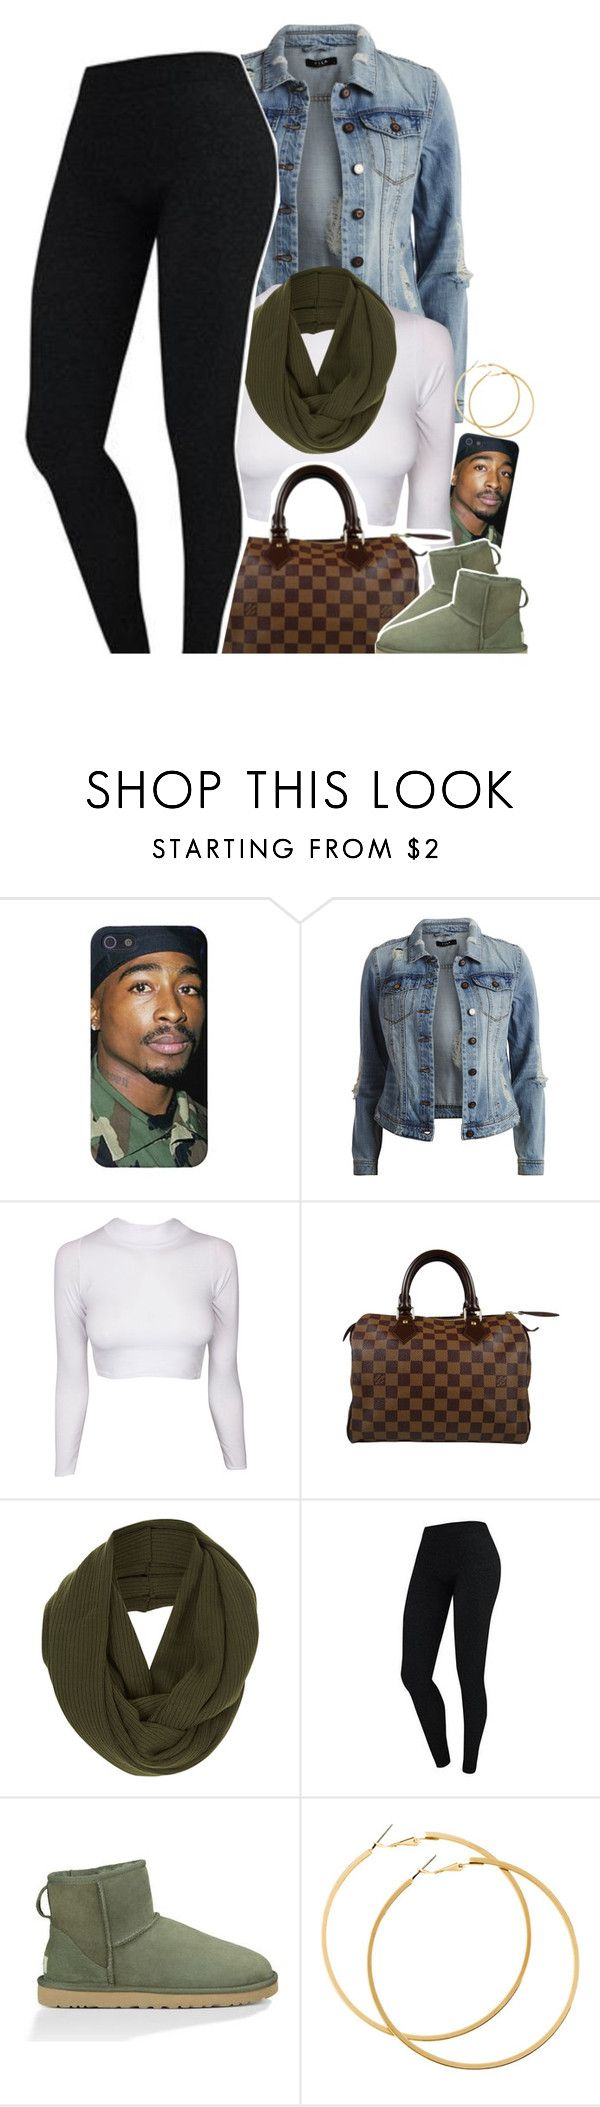 """""""Untitled #1555"""" by lulu-foreva ❤ liked on Polyvore featuring VILA, Louis Vuitton, Topshop, UGG Australia, H&M, women's clothing, women, female, woman and misses"""